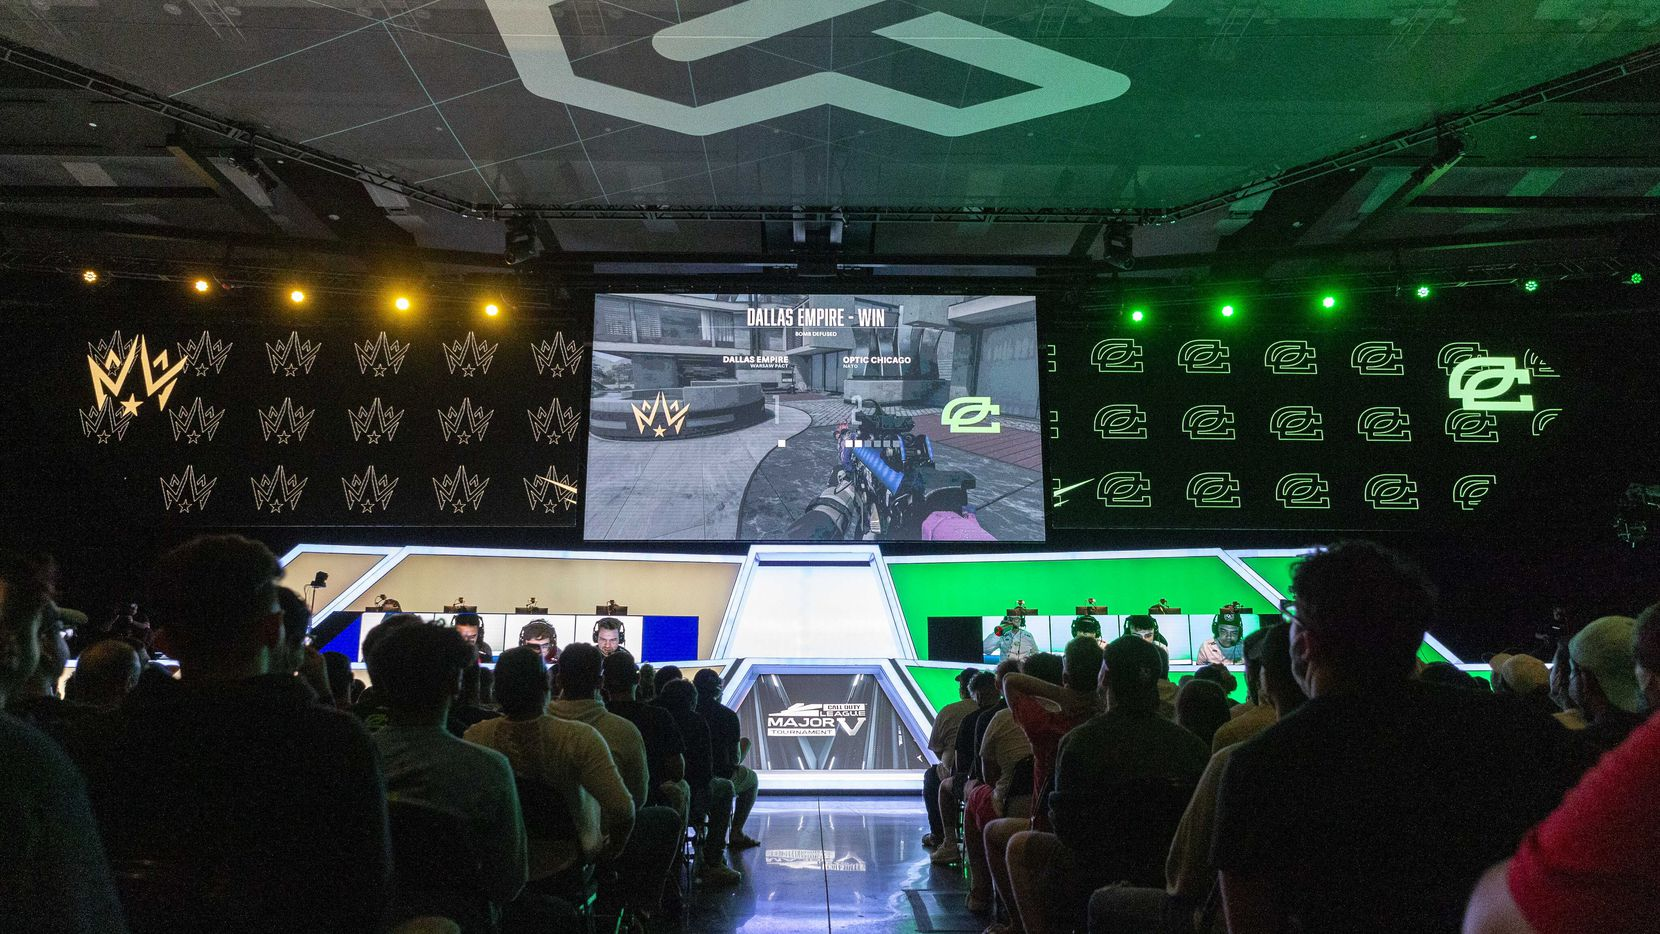 Fans watch a match between Dallas Empire and Chicago OpTic during the Call of Duty League Major V tournament at Esports Stadium Arlington on Sunday, Aug. 1, 2021, in Arlington. Empire finished 4th in the tournament after a 3-1 loss to OpTic.